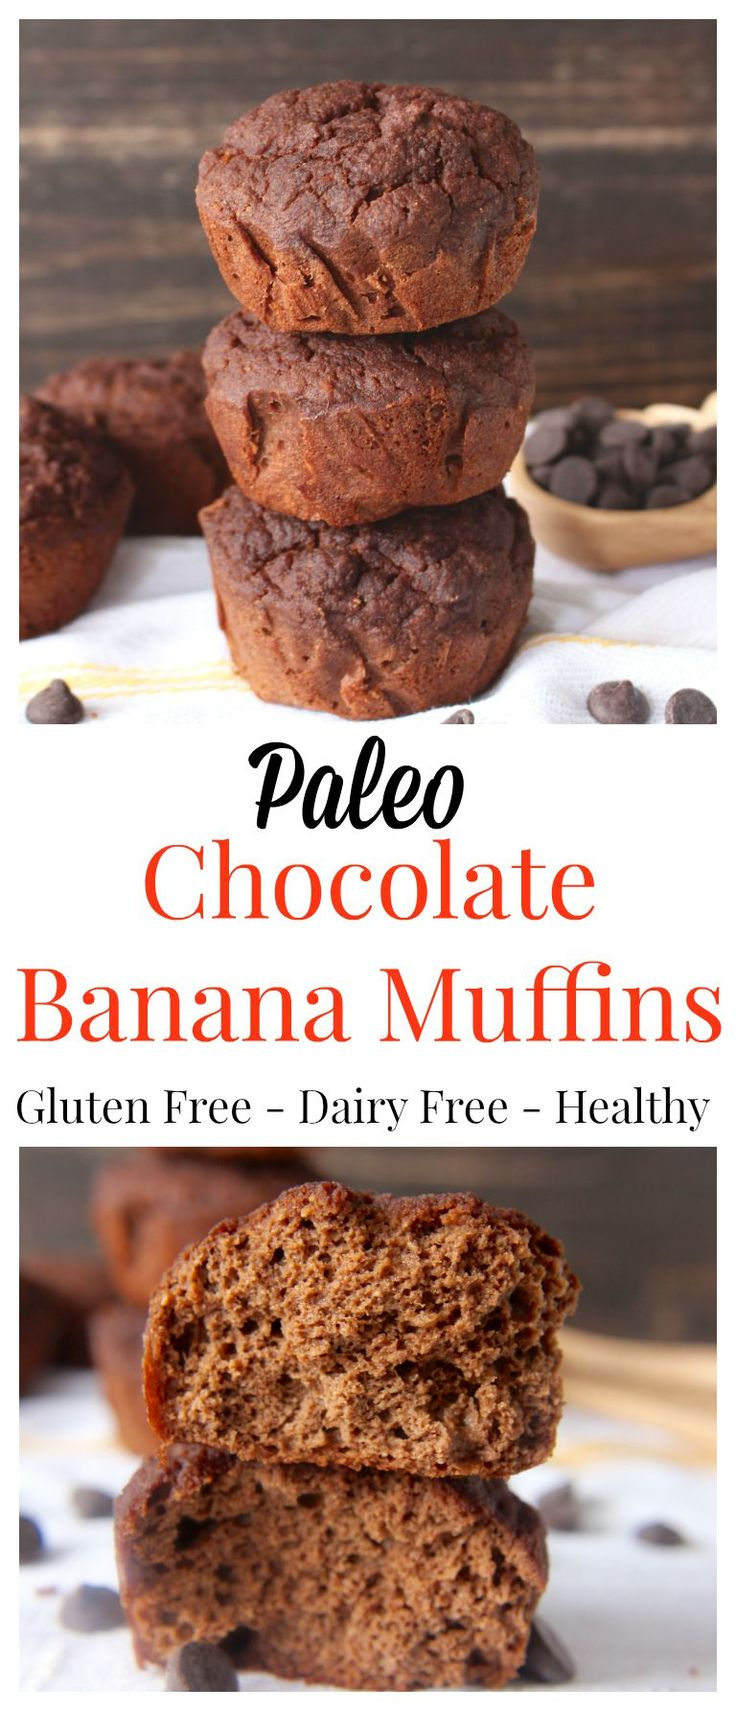 Paleo Chocolate Banana Muffins- easy, delicious, healthy. The best breakfast or dessert. Gluten free, dairy free, and naturally sweetened.